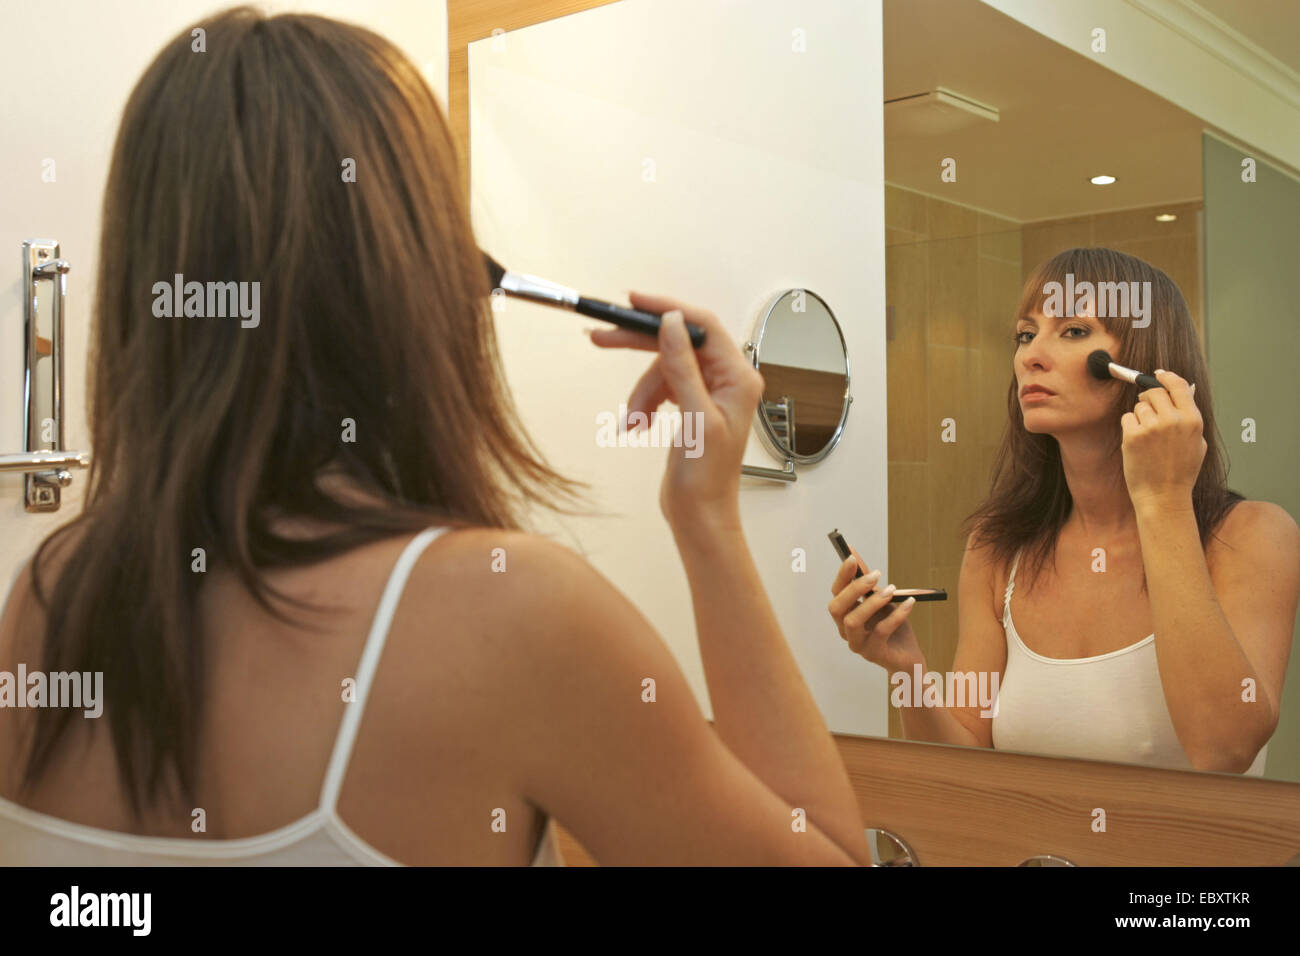 woman putting on make up in bathroom Stock Photo